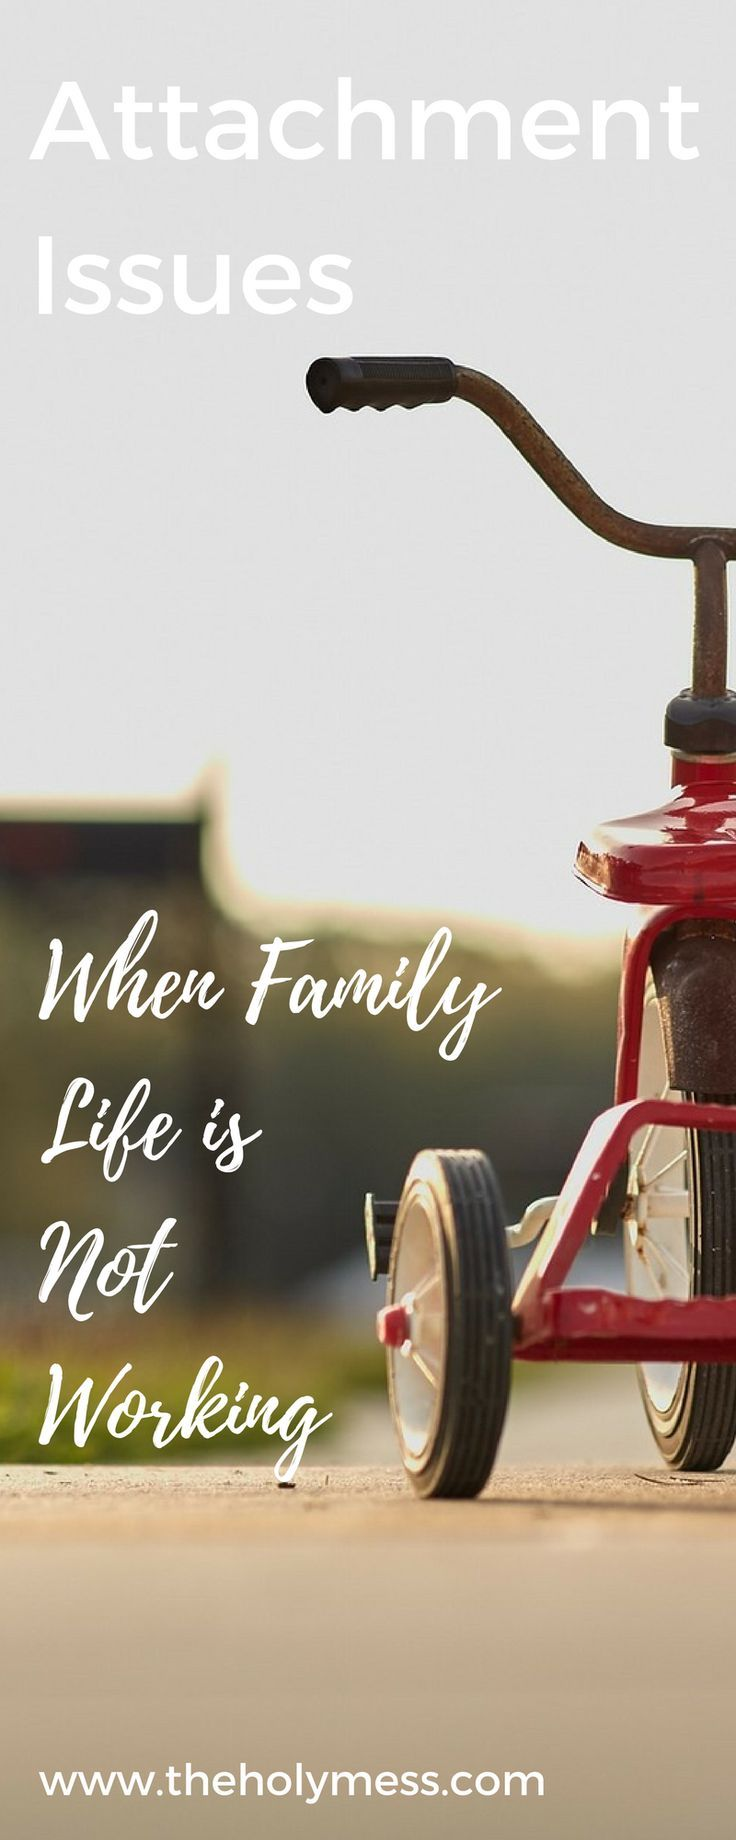 Attachment issues when family life is not working